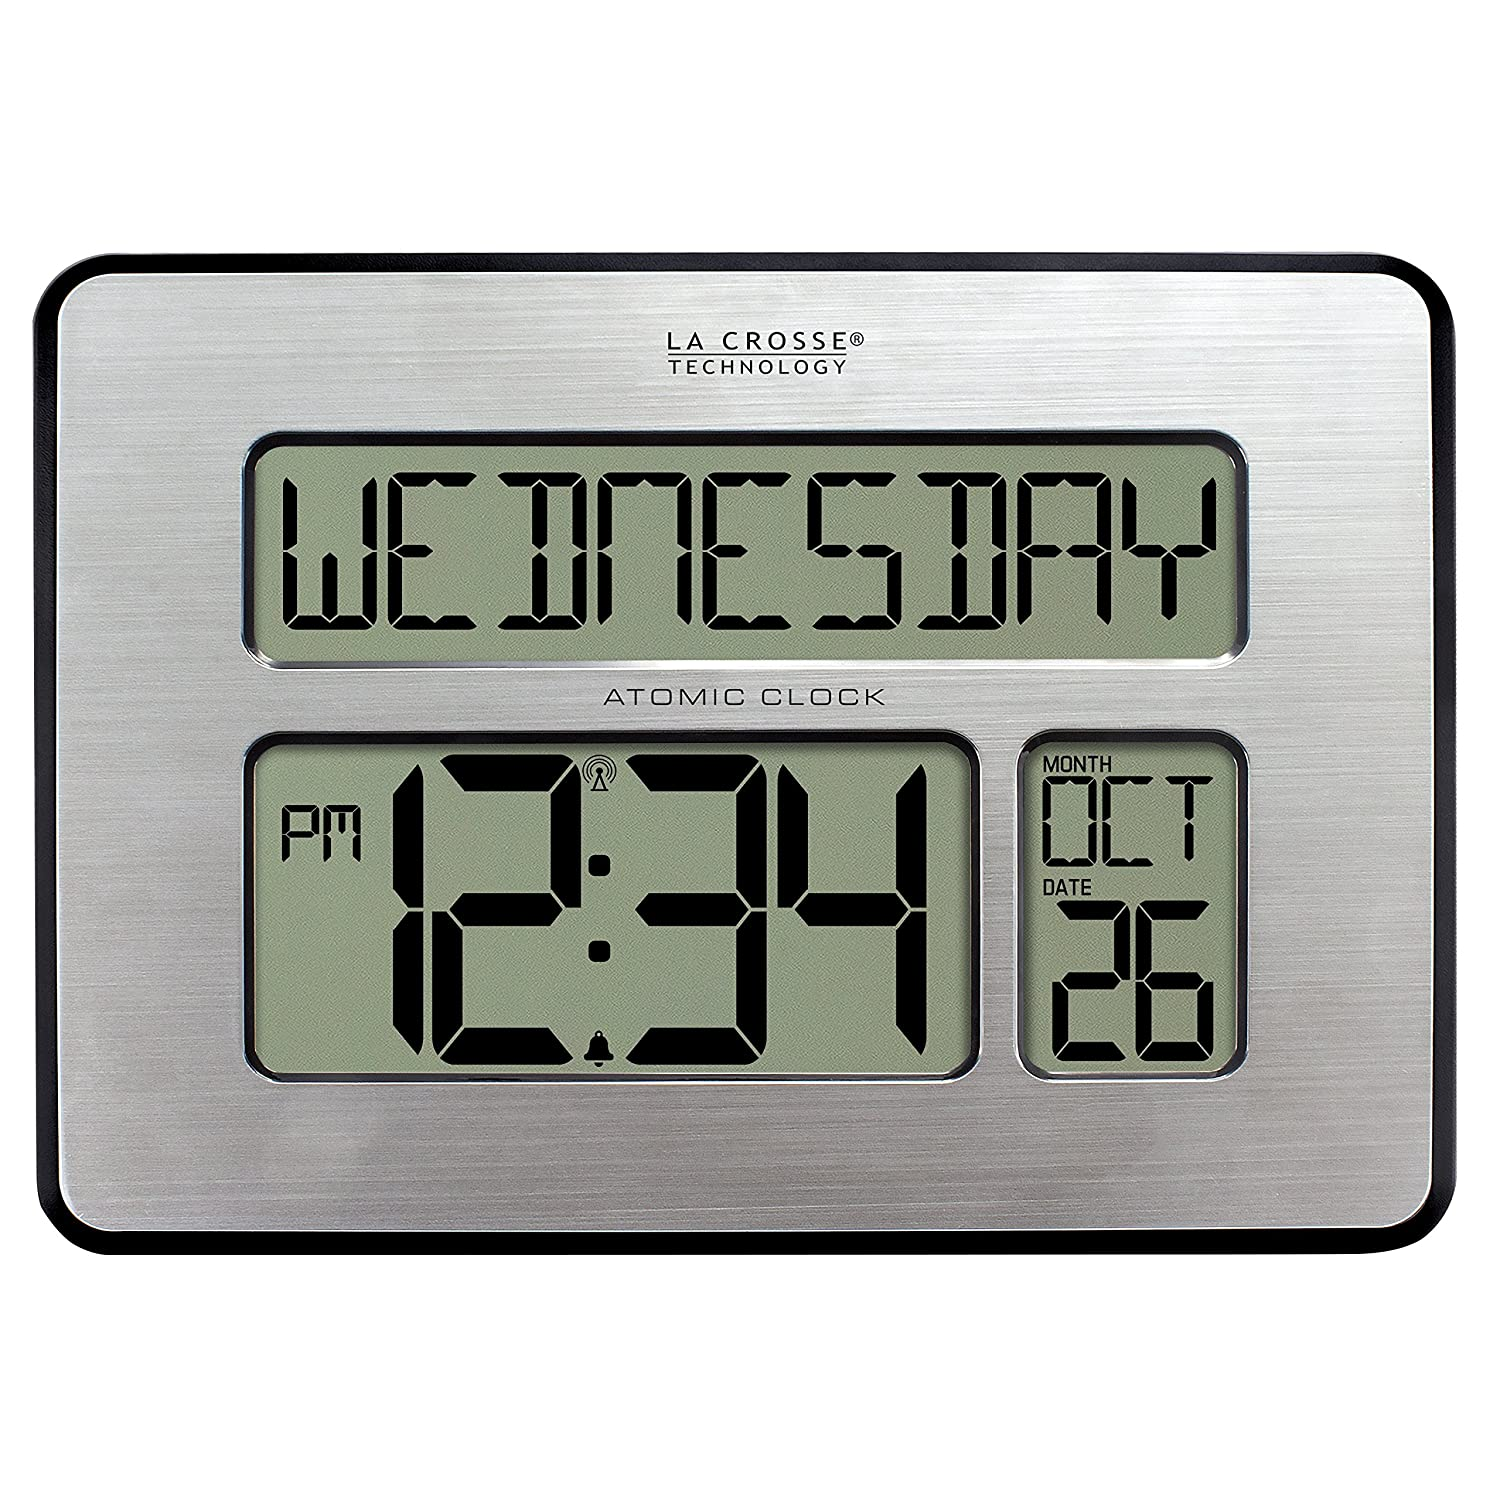 Amazon la crosse technology 513 1419bl int backlight atomic amazon la crosse technology 513 1419bl int backlight atomic full calendar clock with extra large digits perfect gift for the elderly home kitchen amipublicfo Images